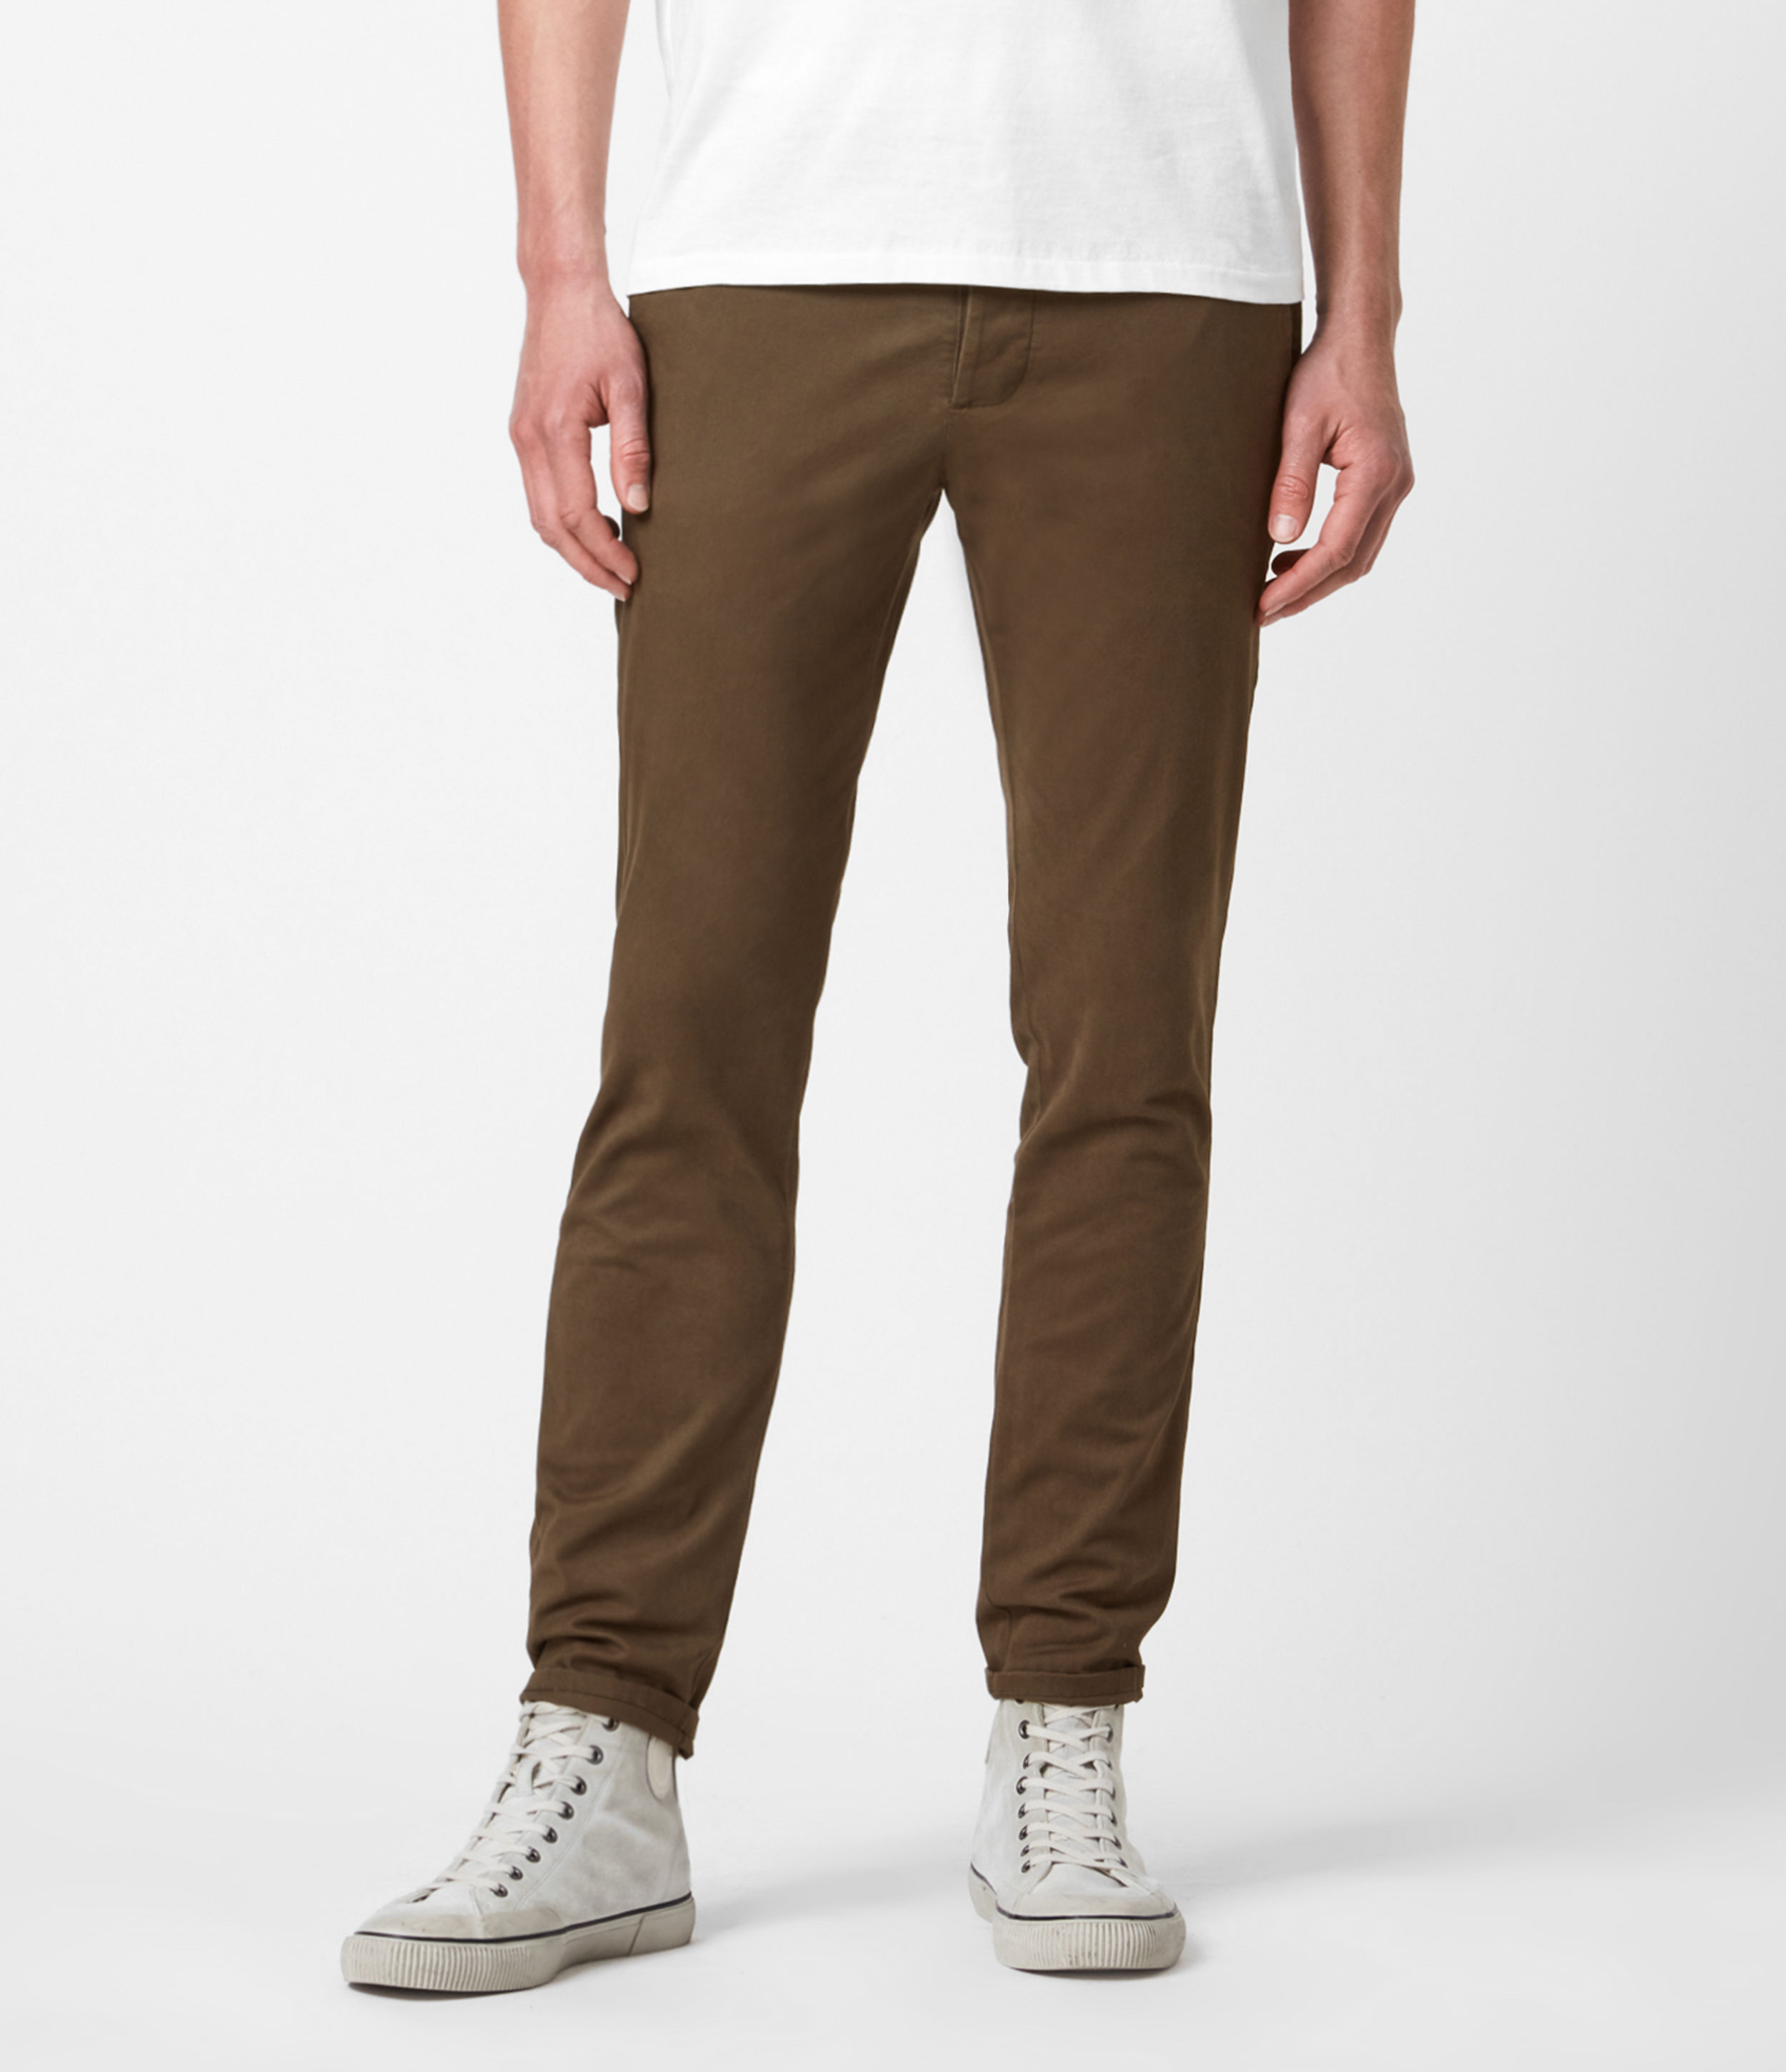 AllSaints Men's Cotton Lightweight Park Skinny Chinos, Brown, Size: 36